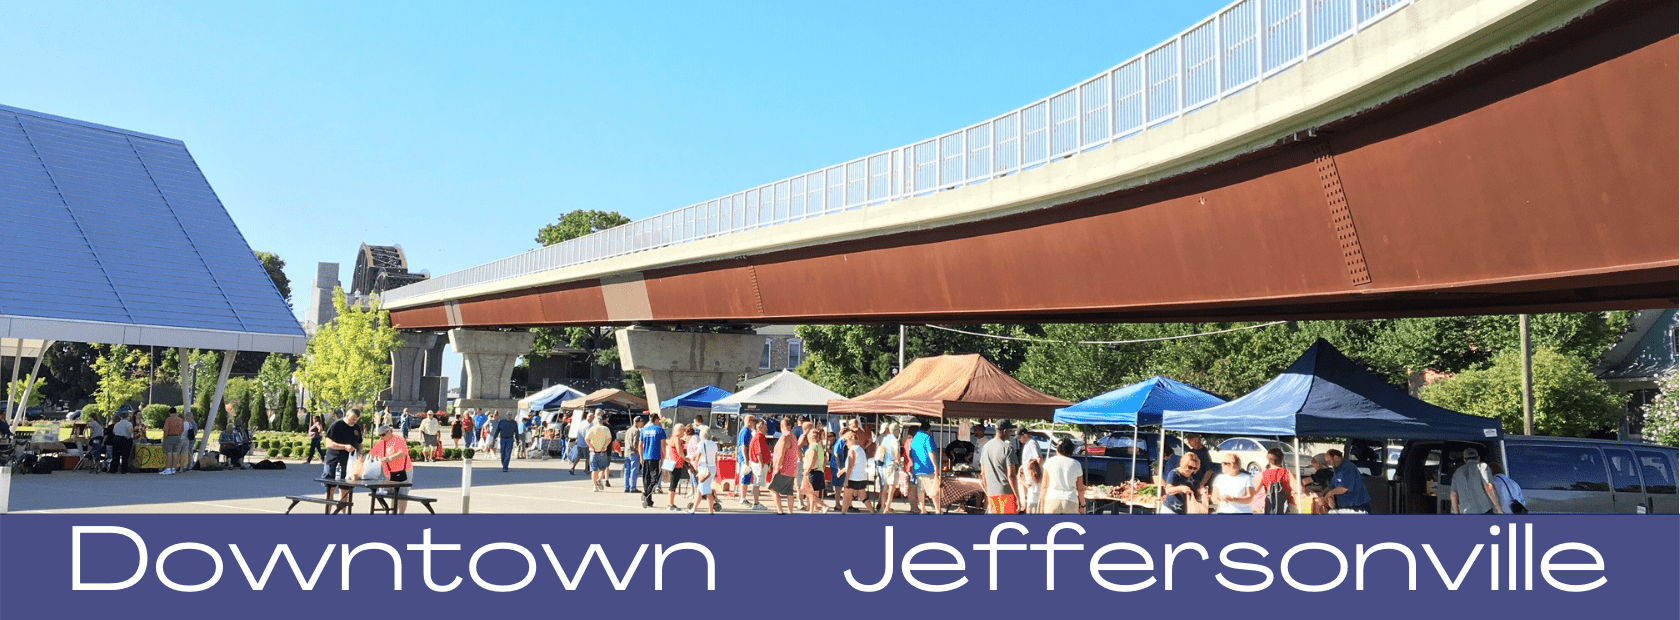 Farmers Market at Big Four Station